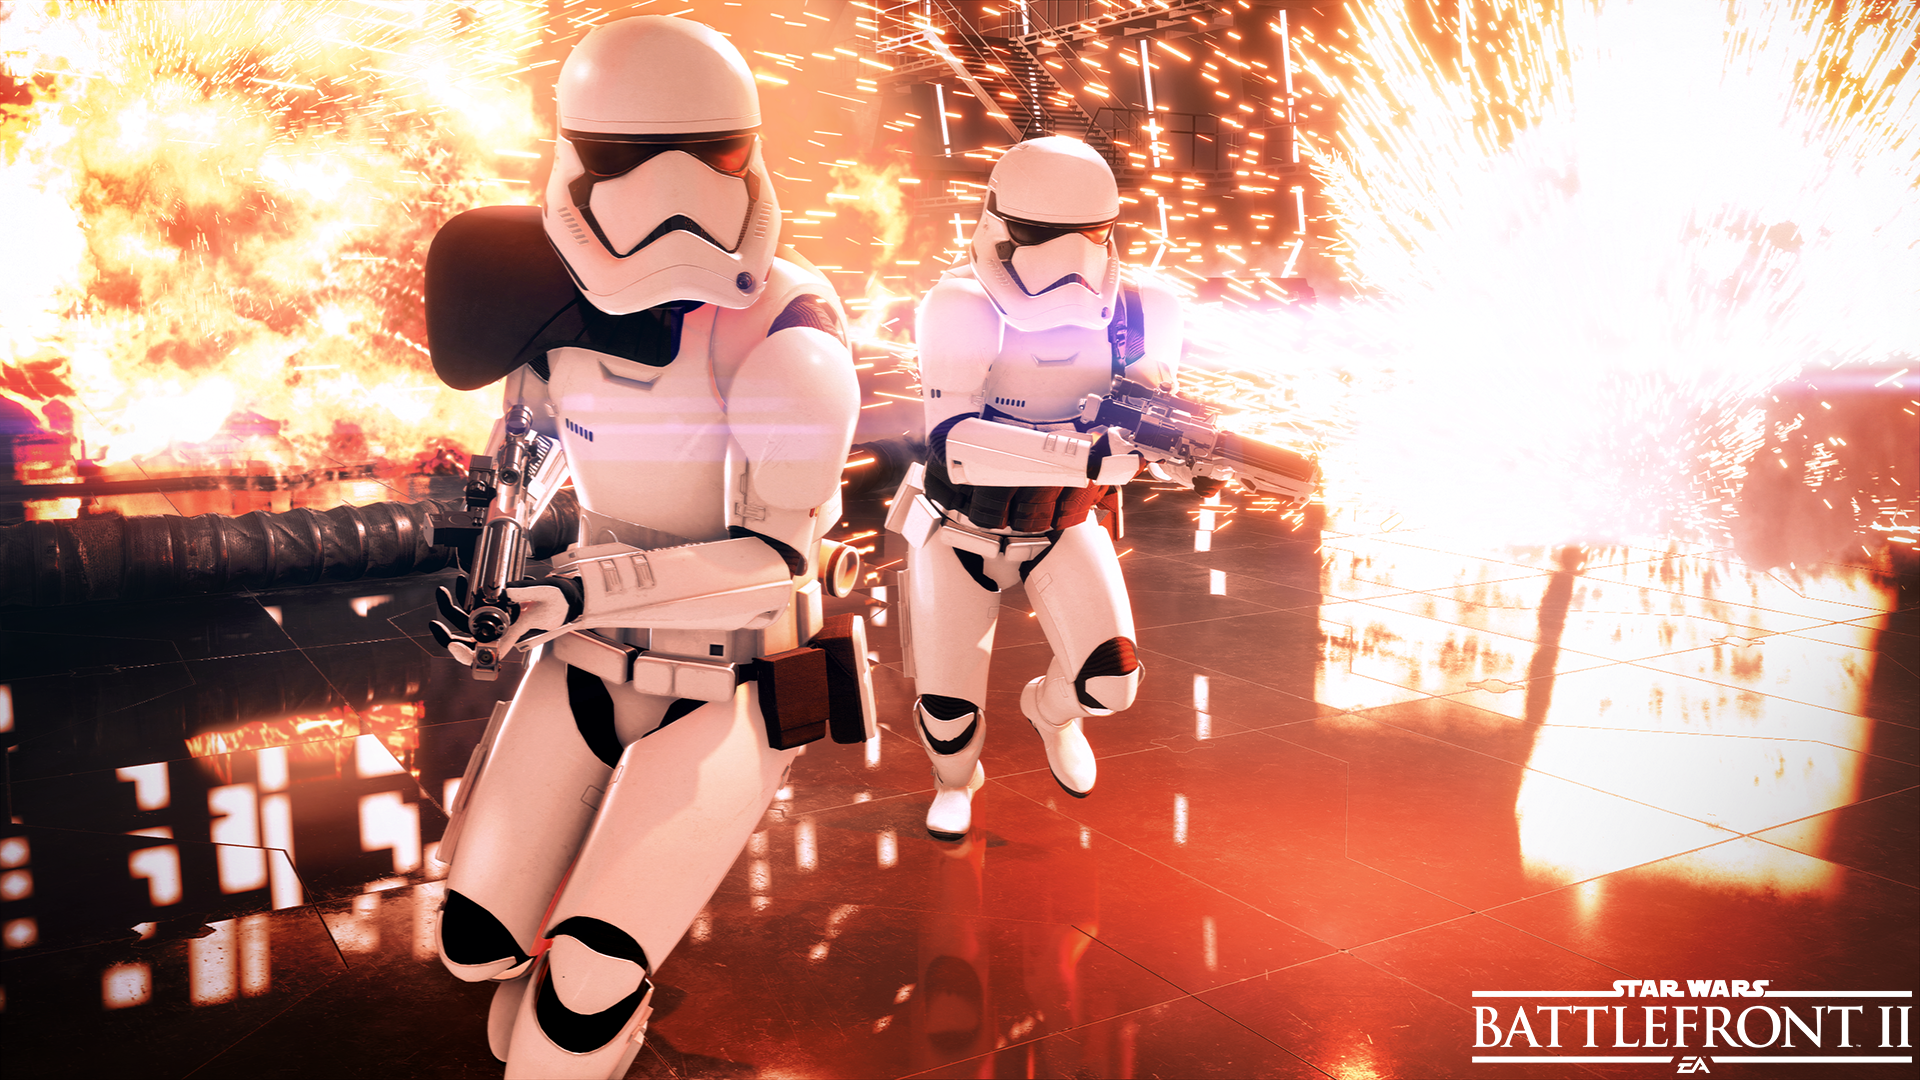 'Star Wars Battlefront 2' update adds new Squad System